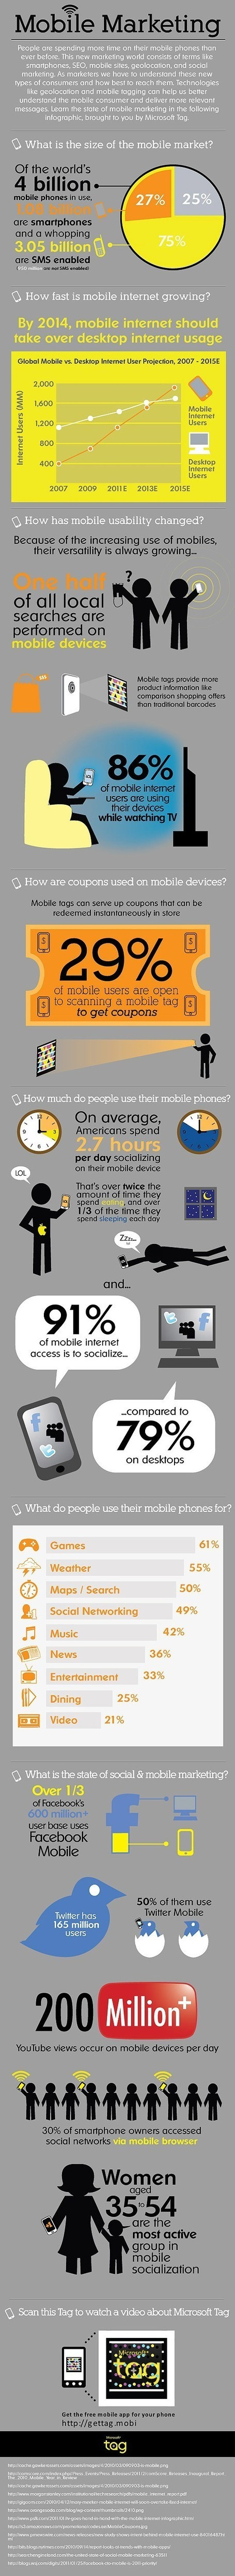 The Mobile Social Audience is Evolving - Here's What's Happening [Infographic] | WEBOLUTION! | Scoop.it